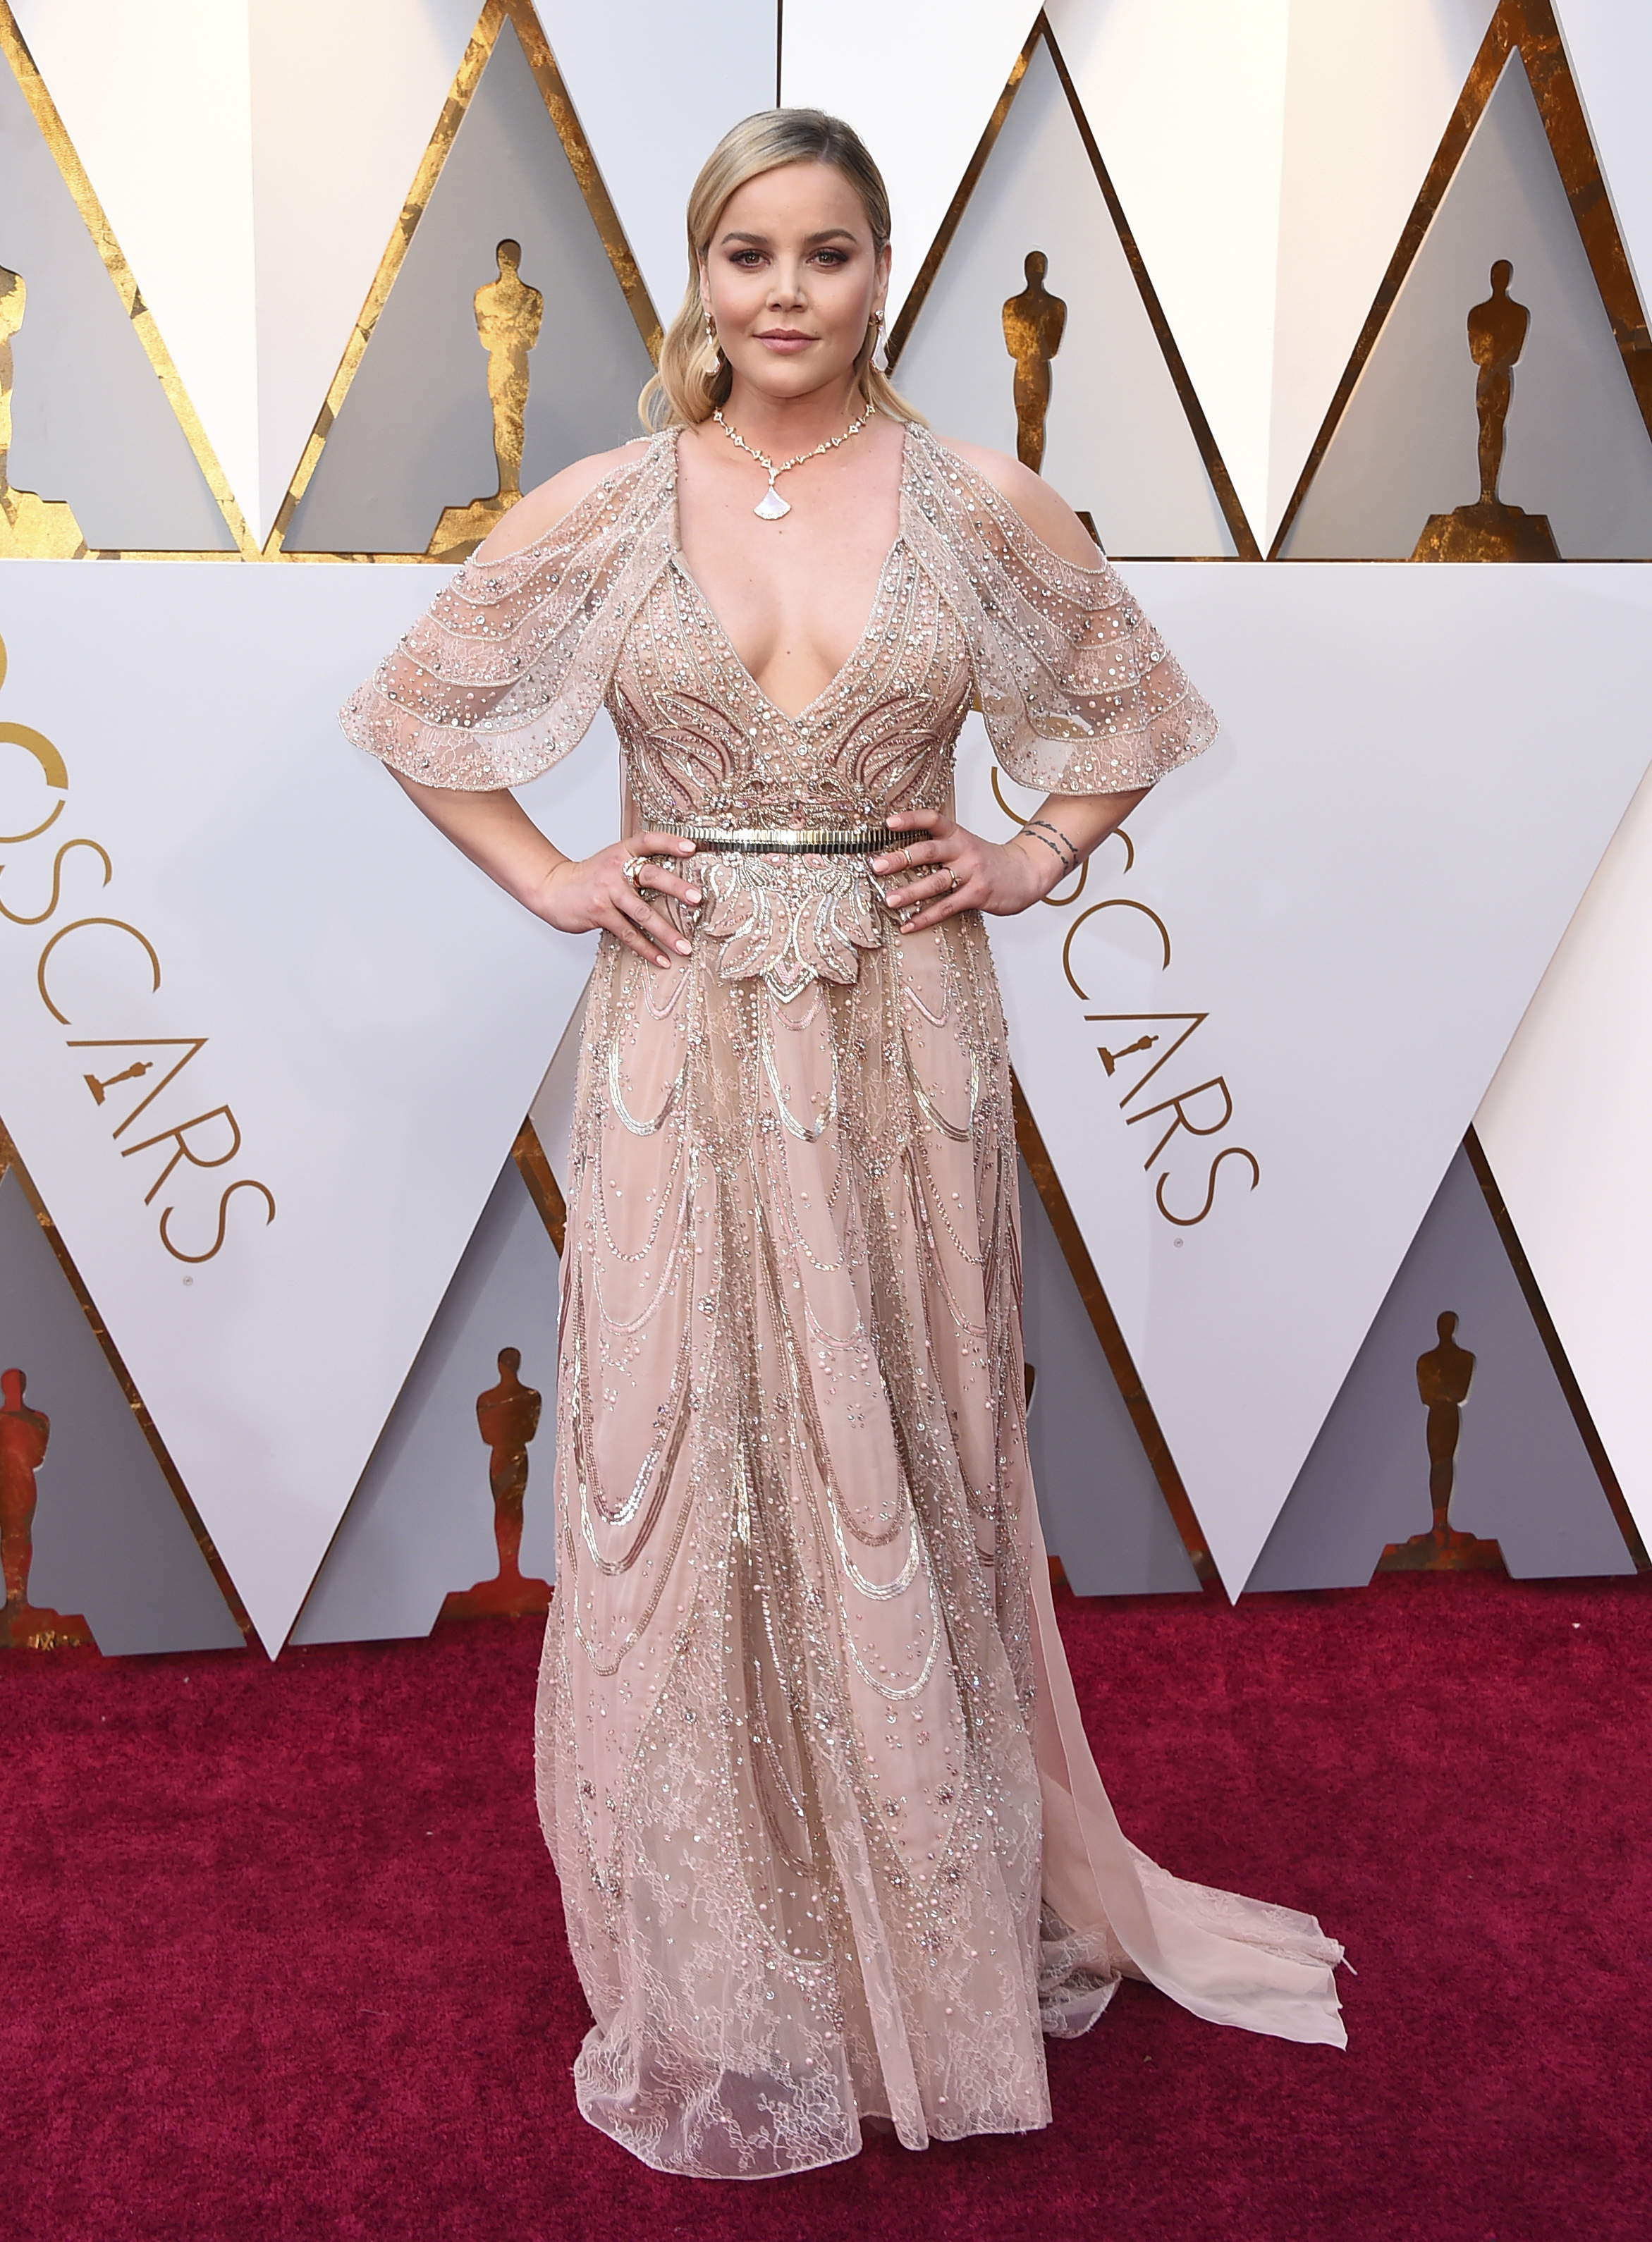 "<div class=""meta image-caption""><div class=""origin-logo origin-image none""><span>none</span></div><span class=""caption-text"">Abbie Cornish arrives at the Oscars on Sunday, March 4, 2018, at the Dolby Theatre in Los Angeles. (Jordan Strauss/Invision/AP)</span></div>"